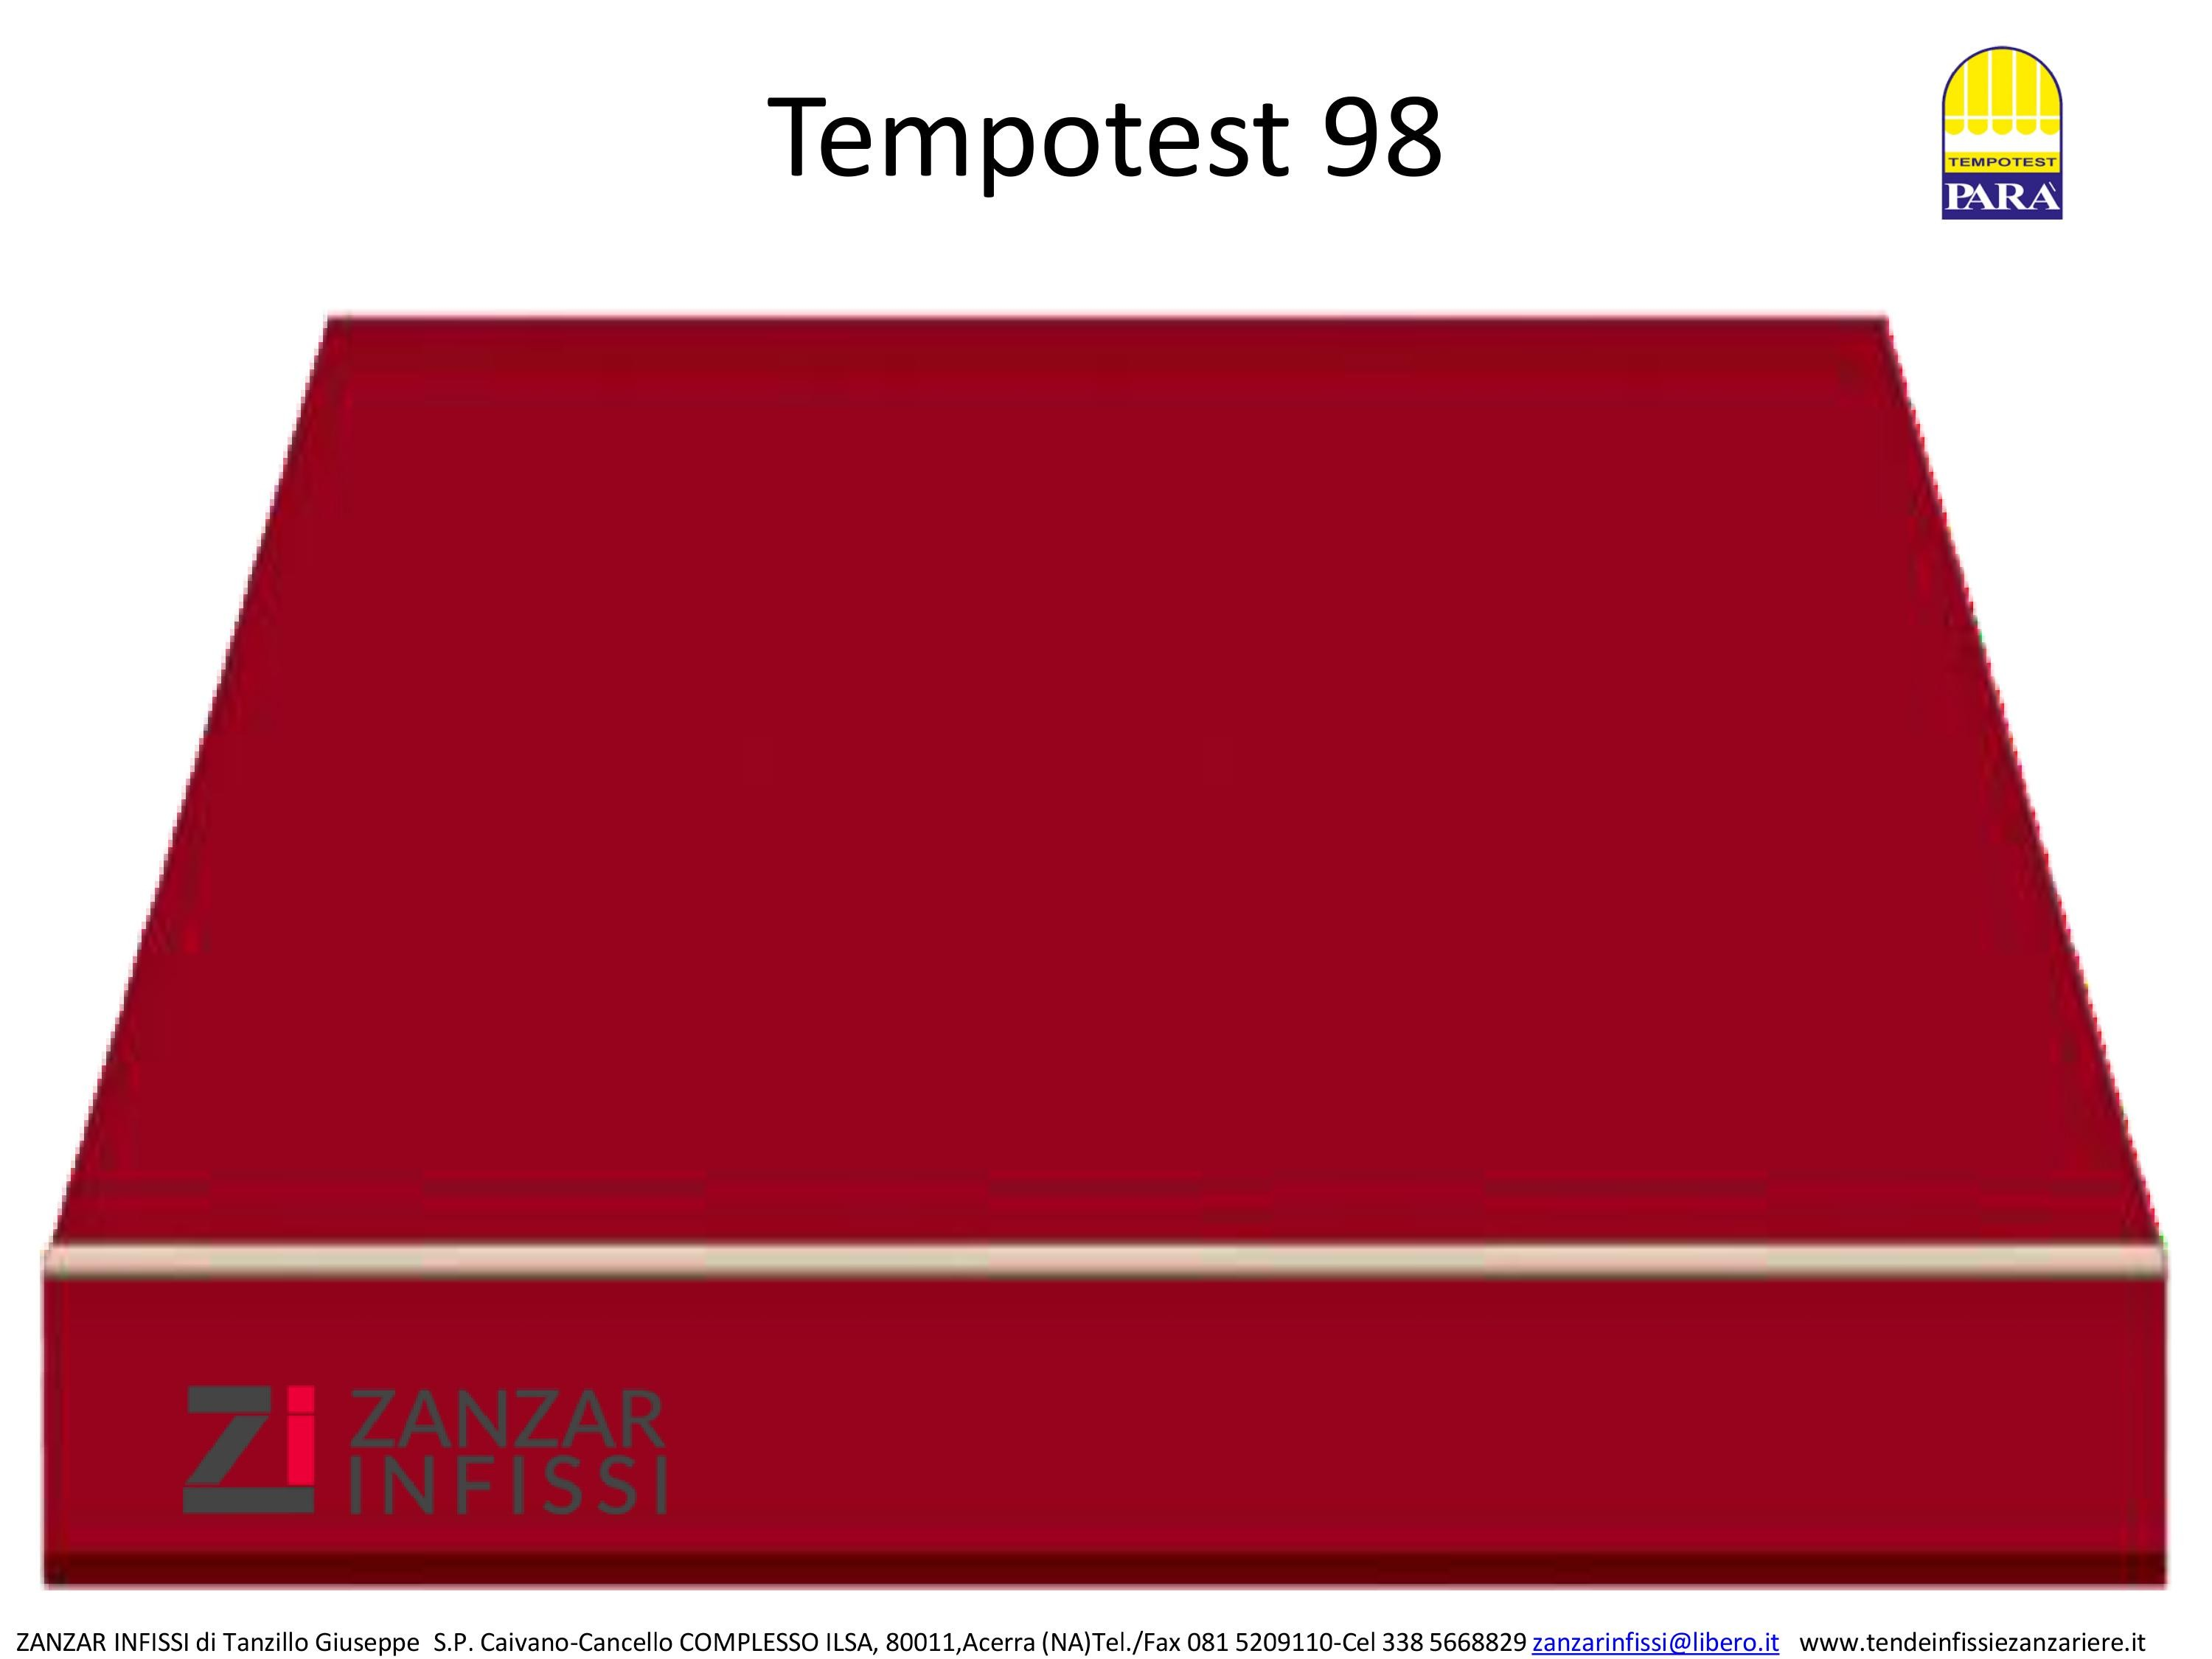 Tempotest 98